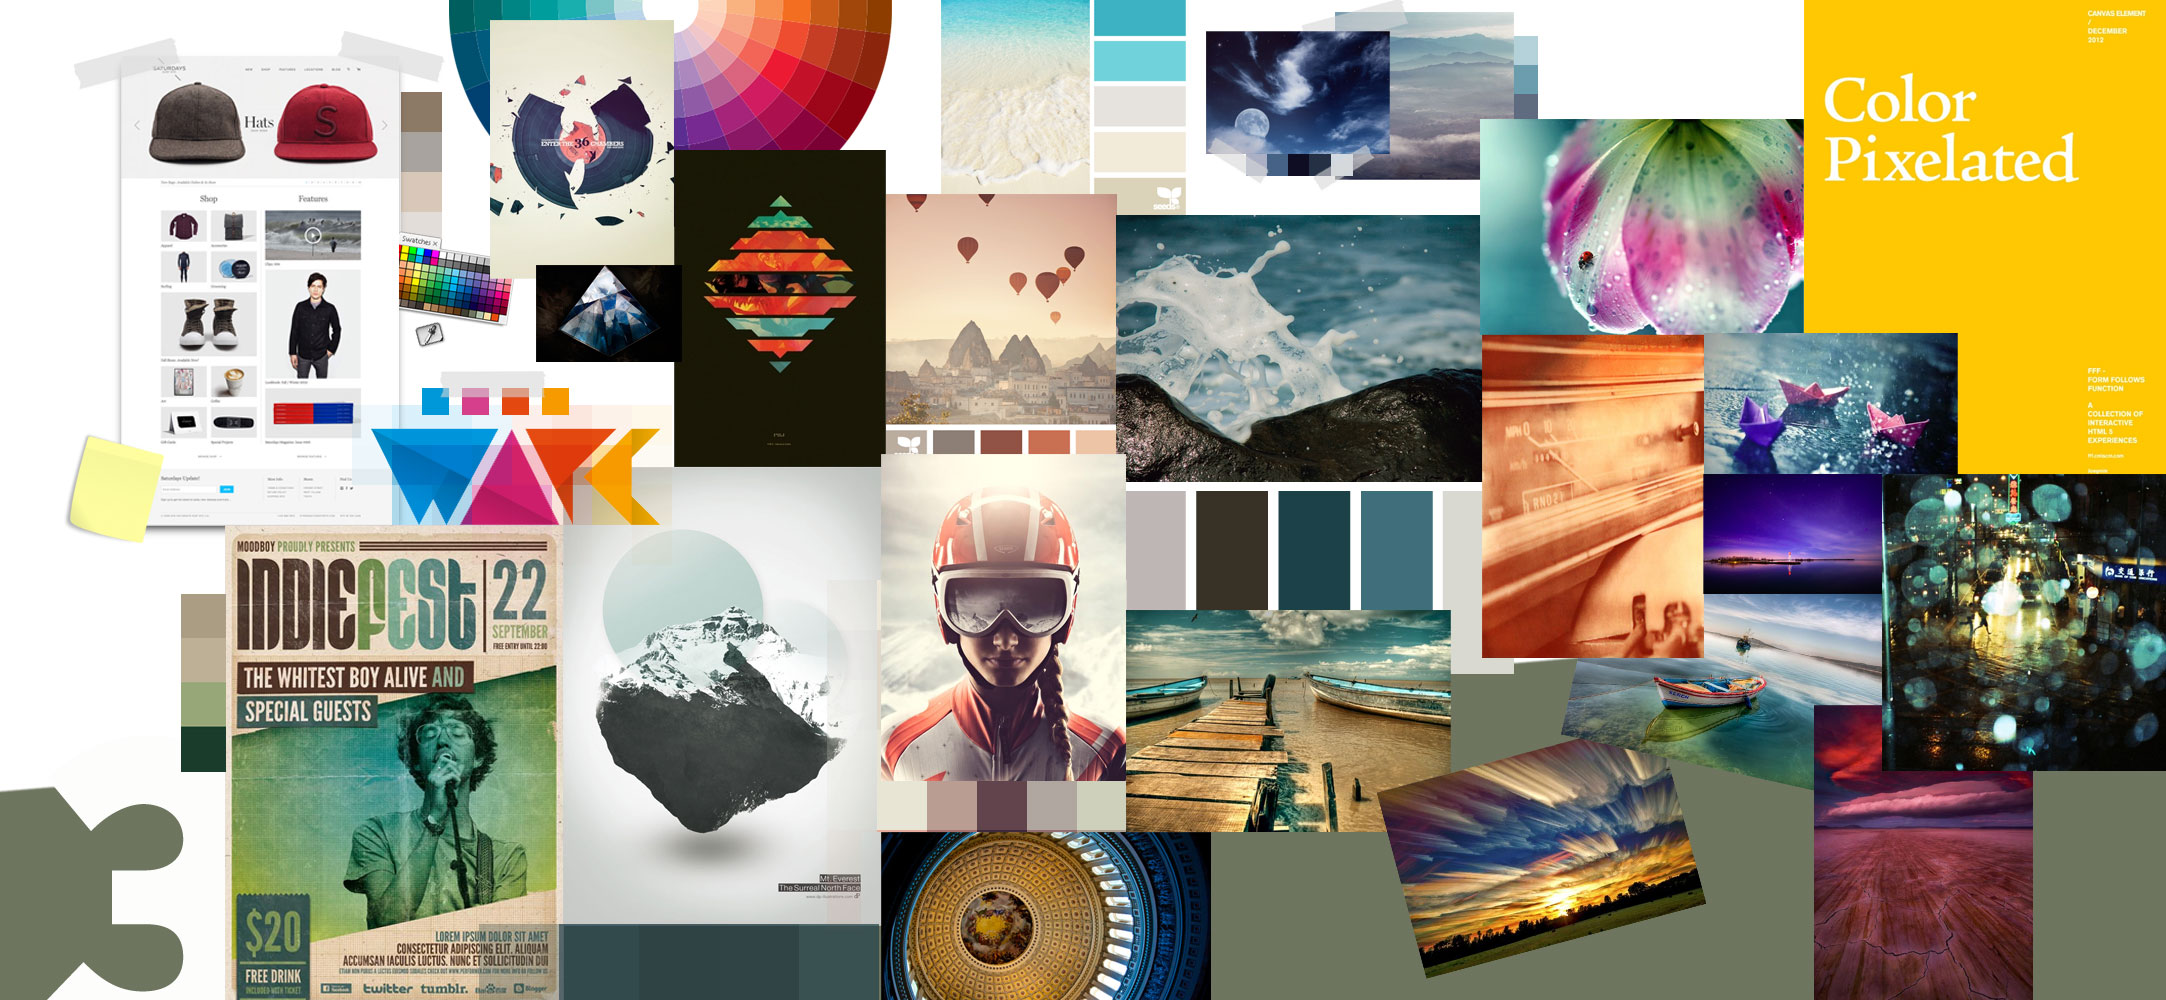 Square Design (Mood Boards)  - image 3 - student project